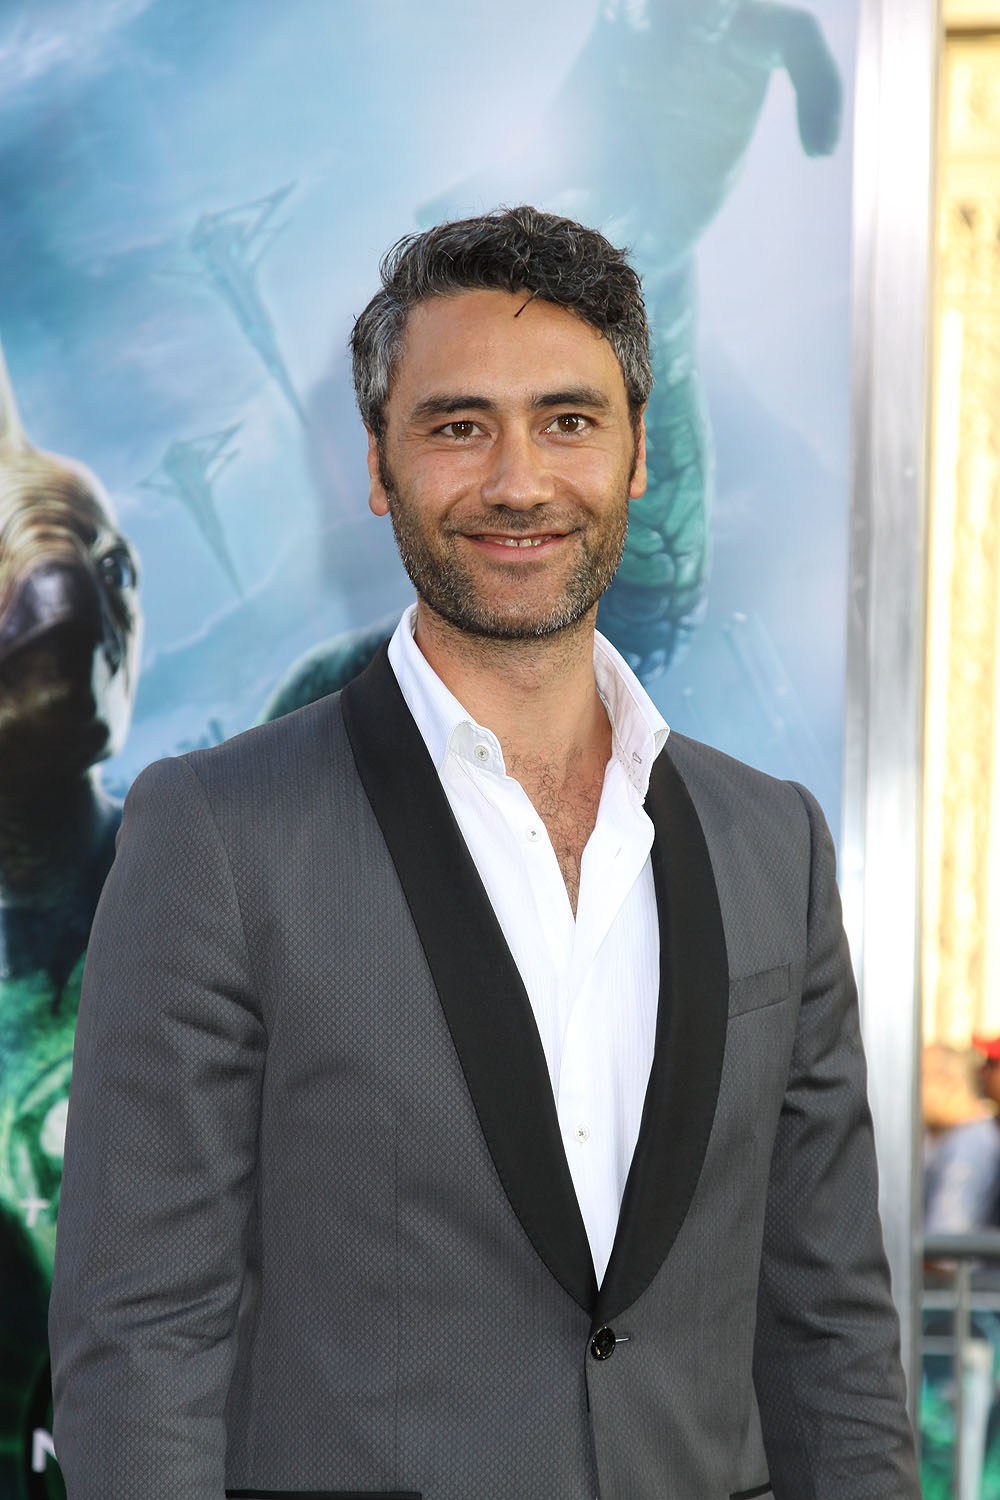 Taika Waititi at the Los Angeles Premiere of GREEN LANTERN, June 15, 2011 at the Grauman's Chinese Theatre, Hollywood. Photo Credit Sue Schneider_MGP Agency